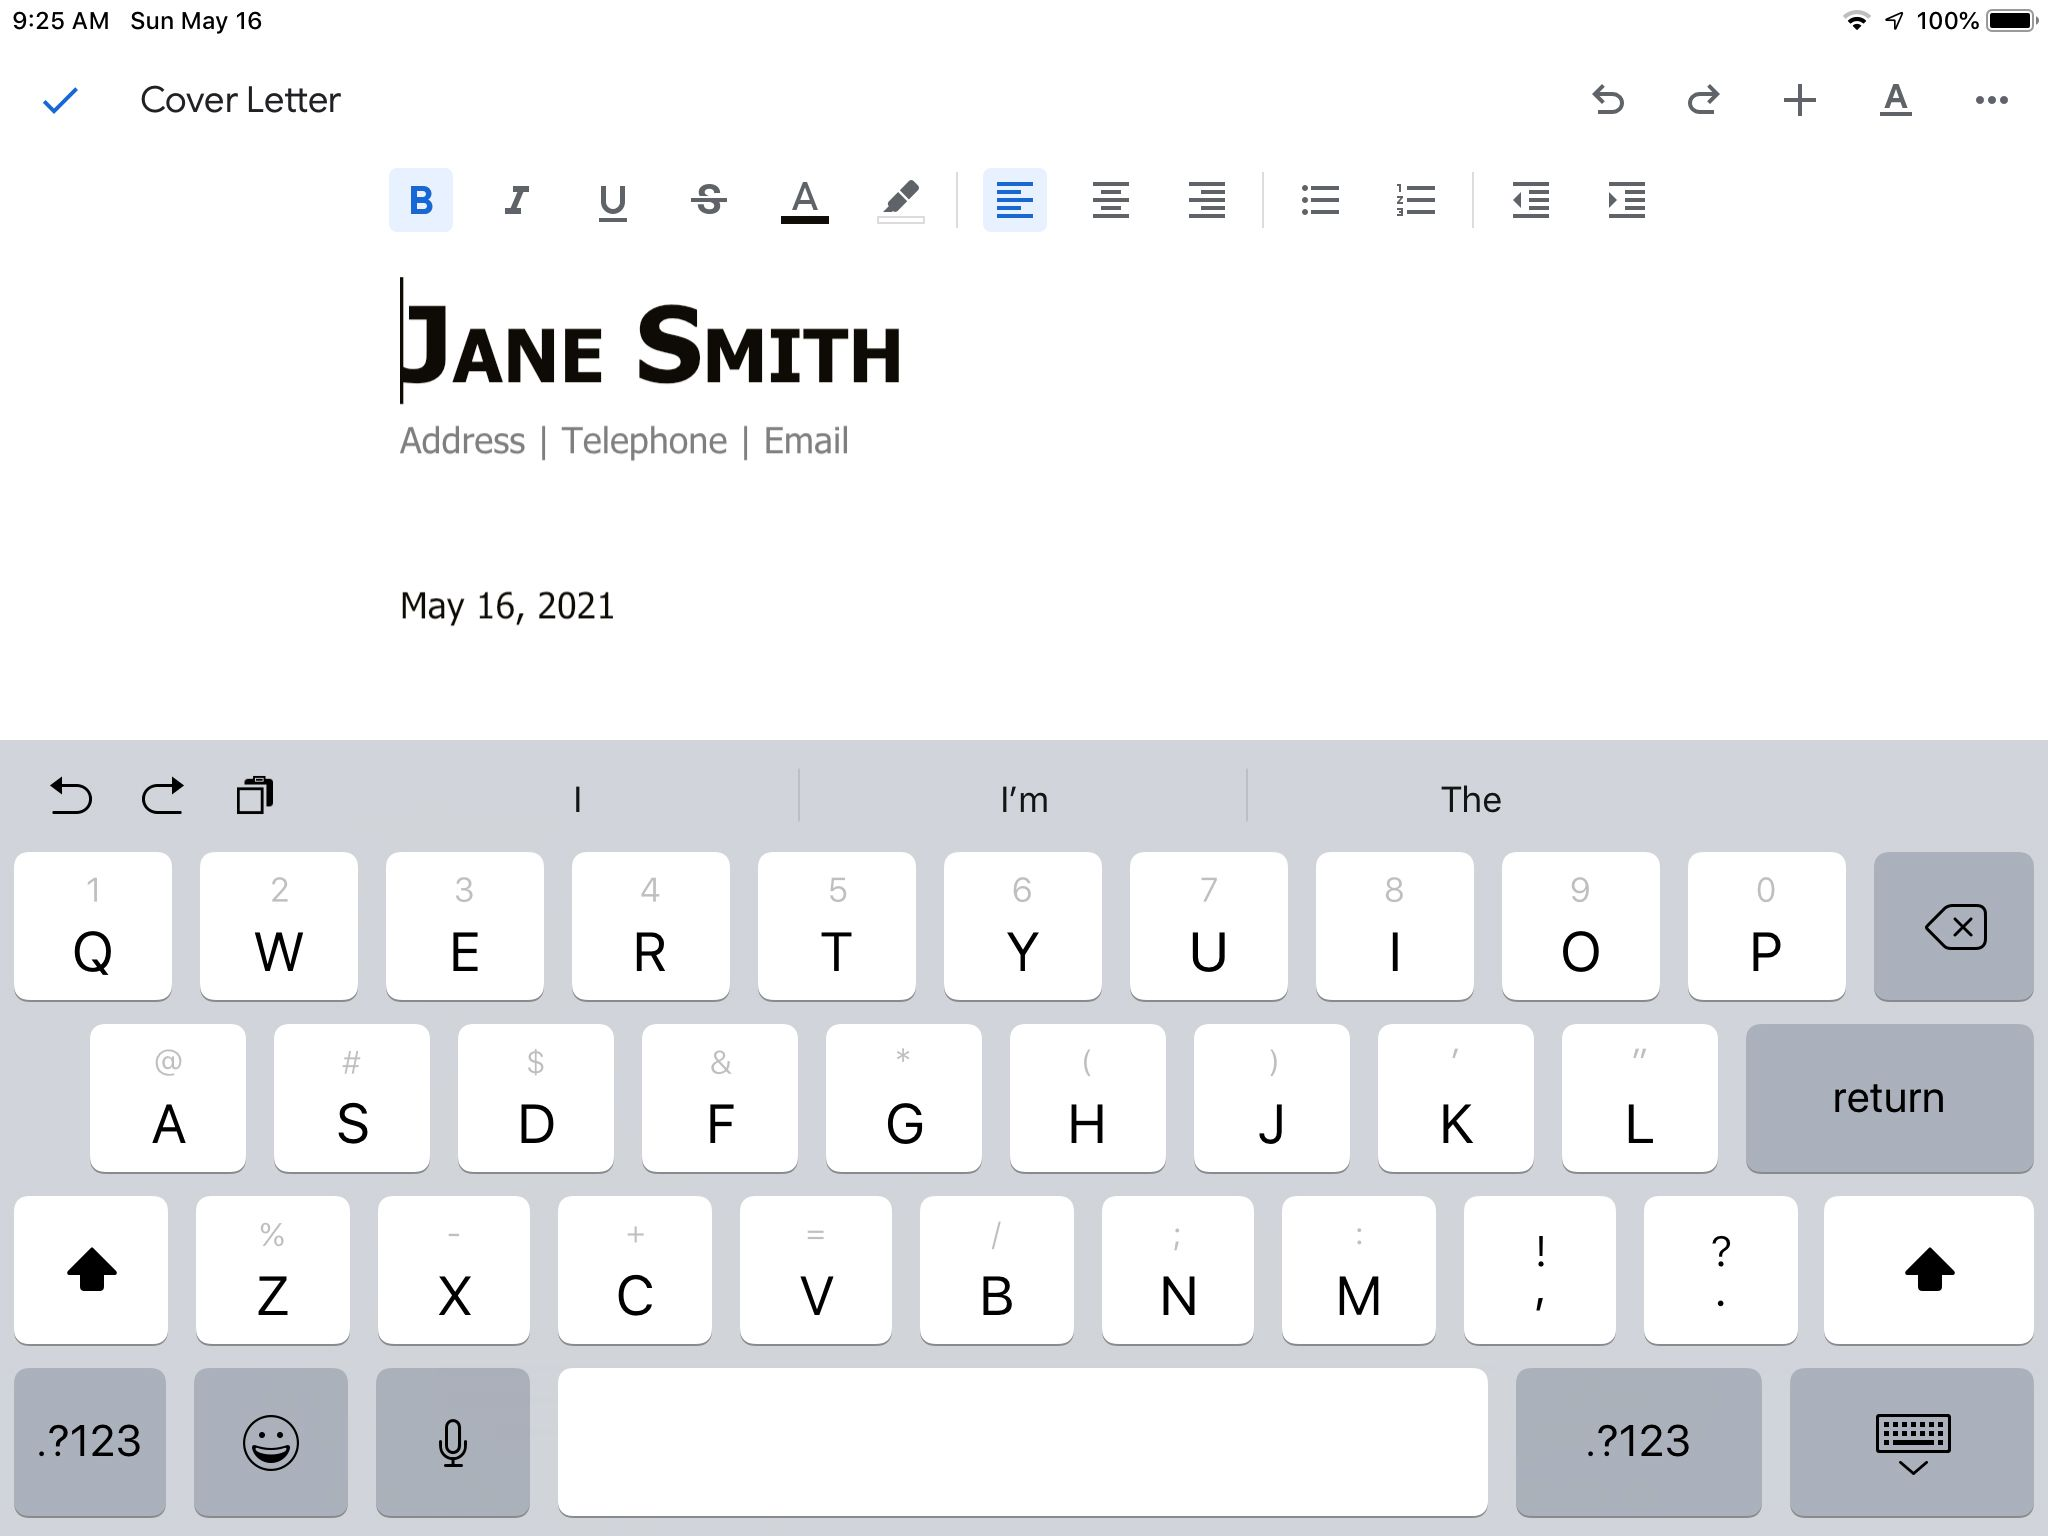 A Google Docs document showing editing mode